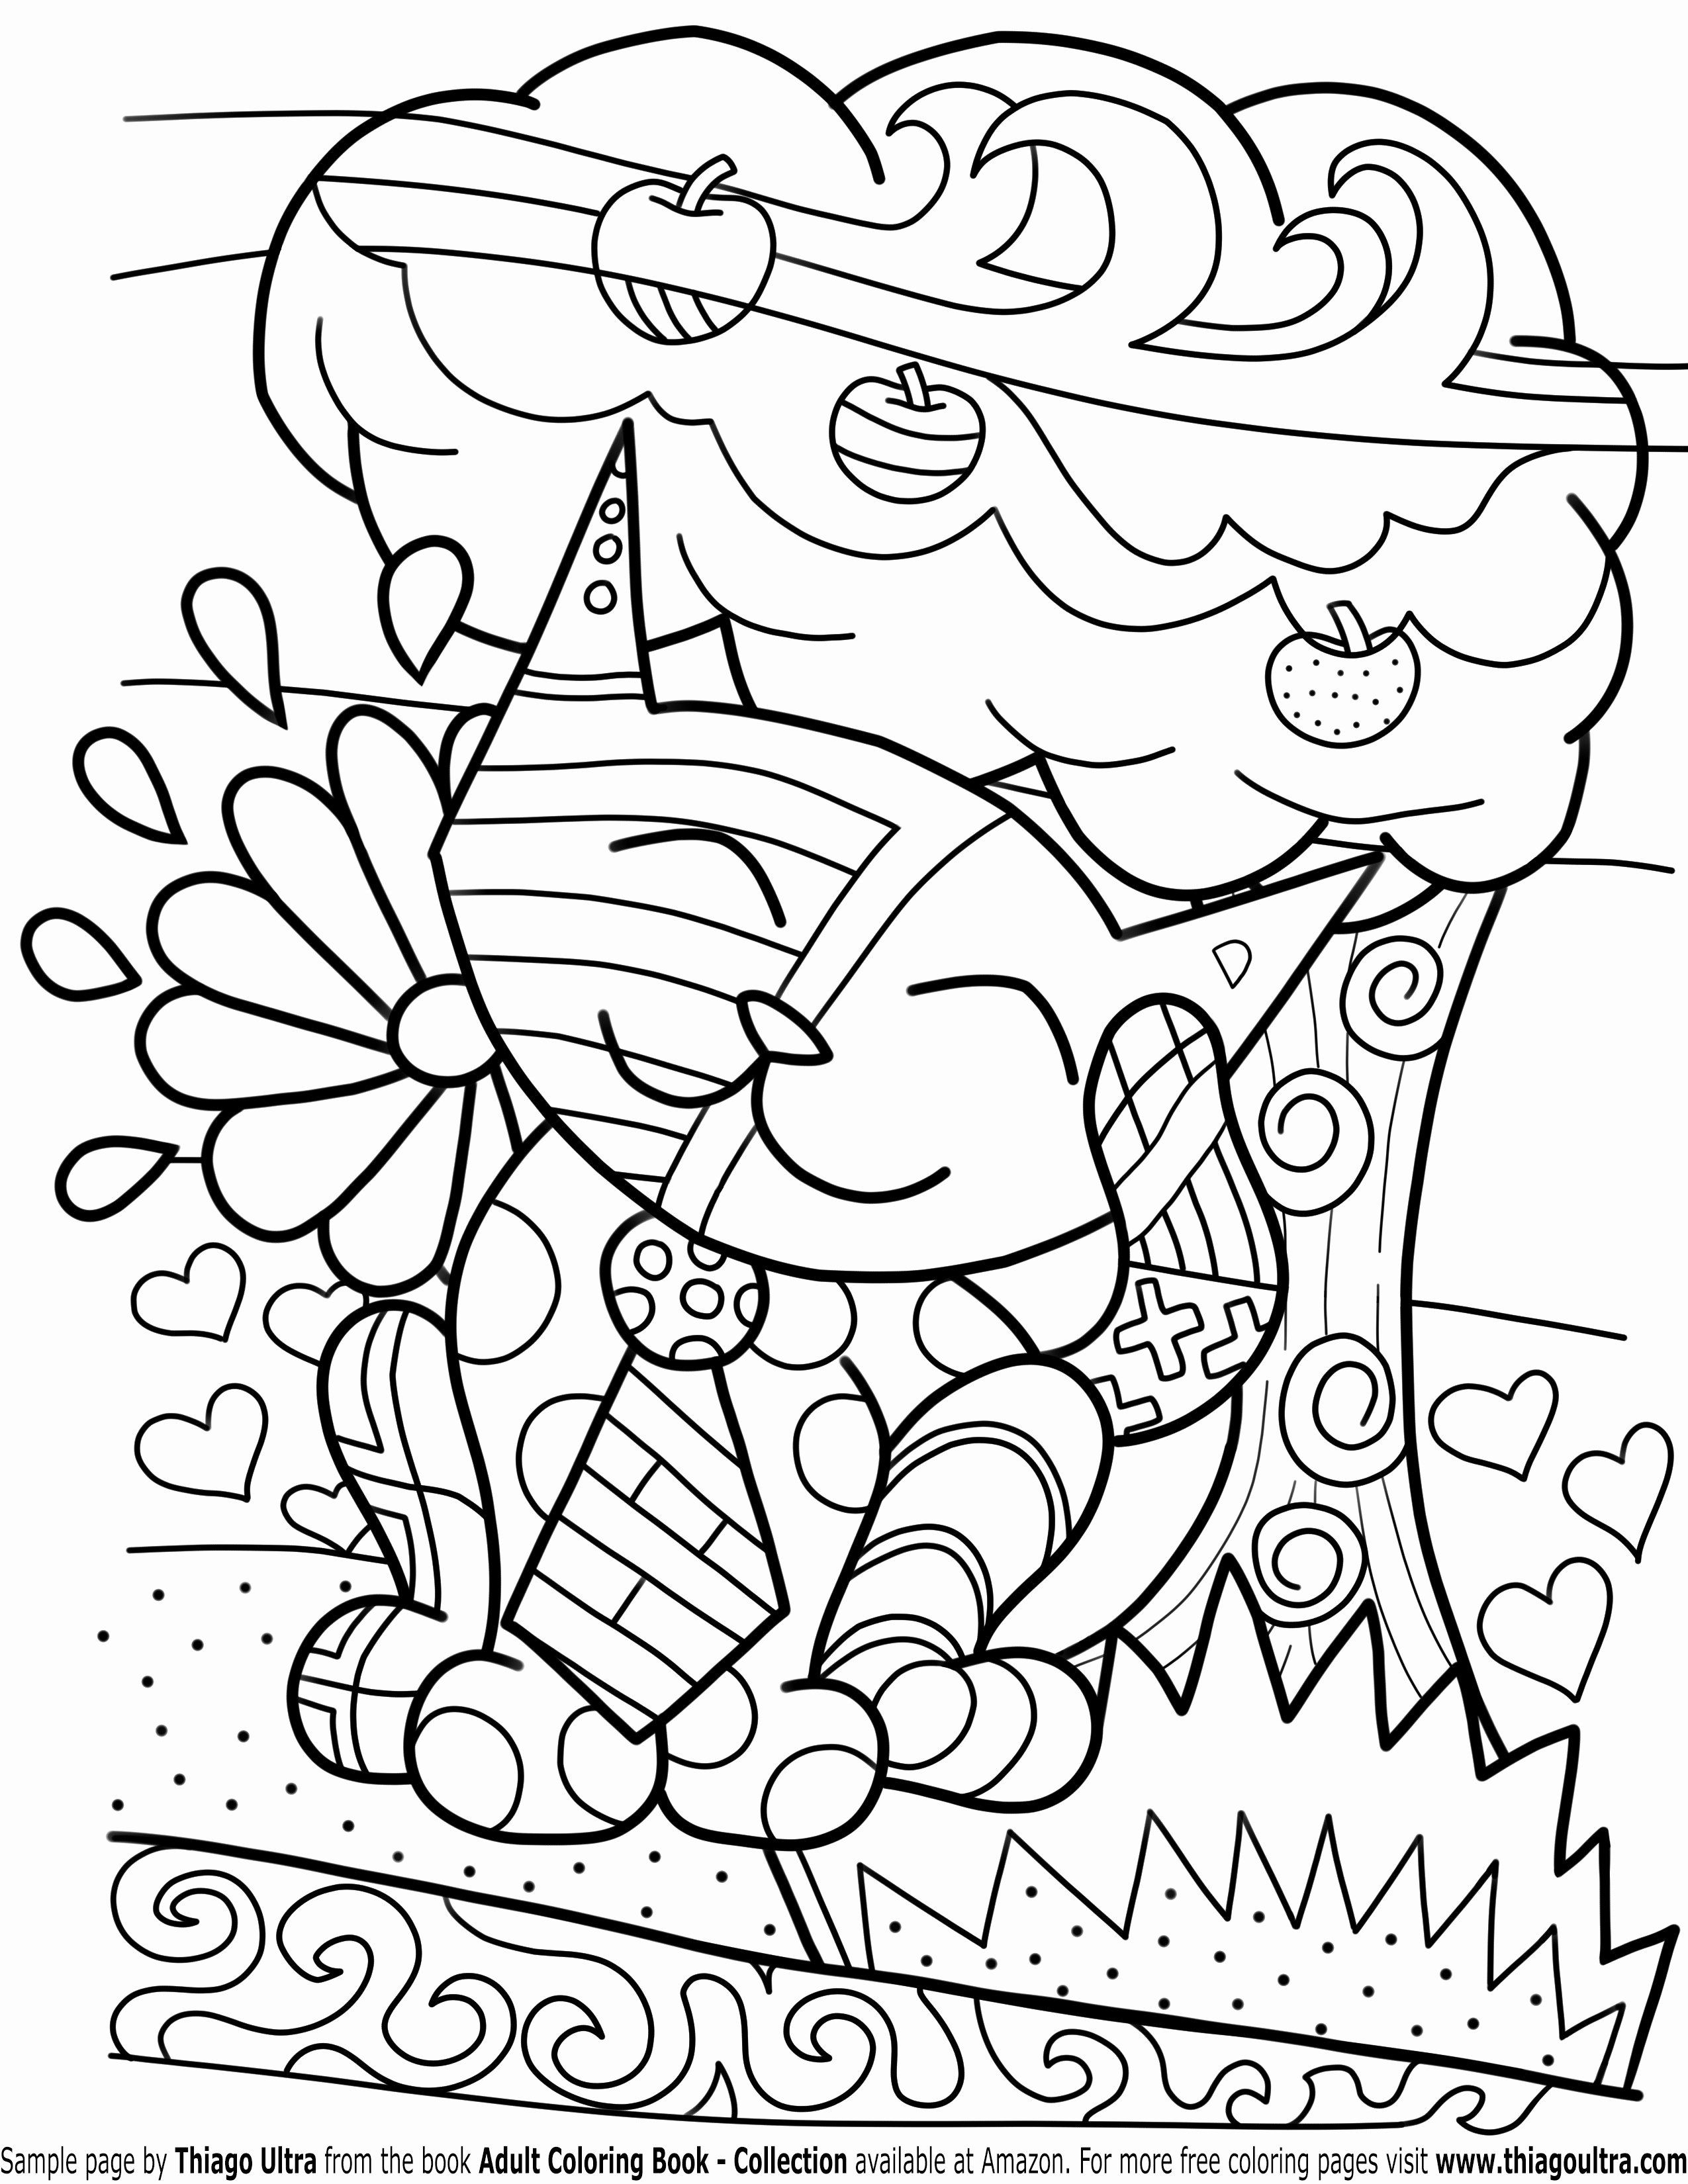 anatomy coloring book free anatomy and physiology coloring pages coloring home coloring anatomy book 1 2